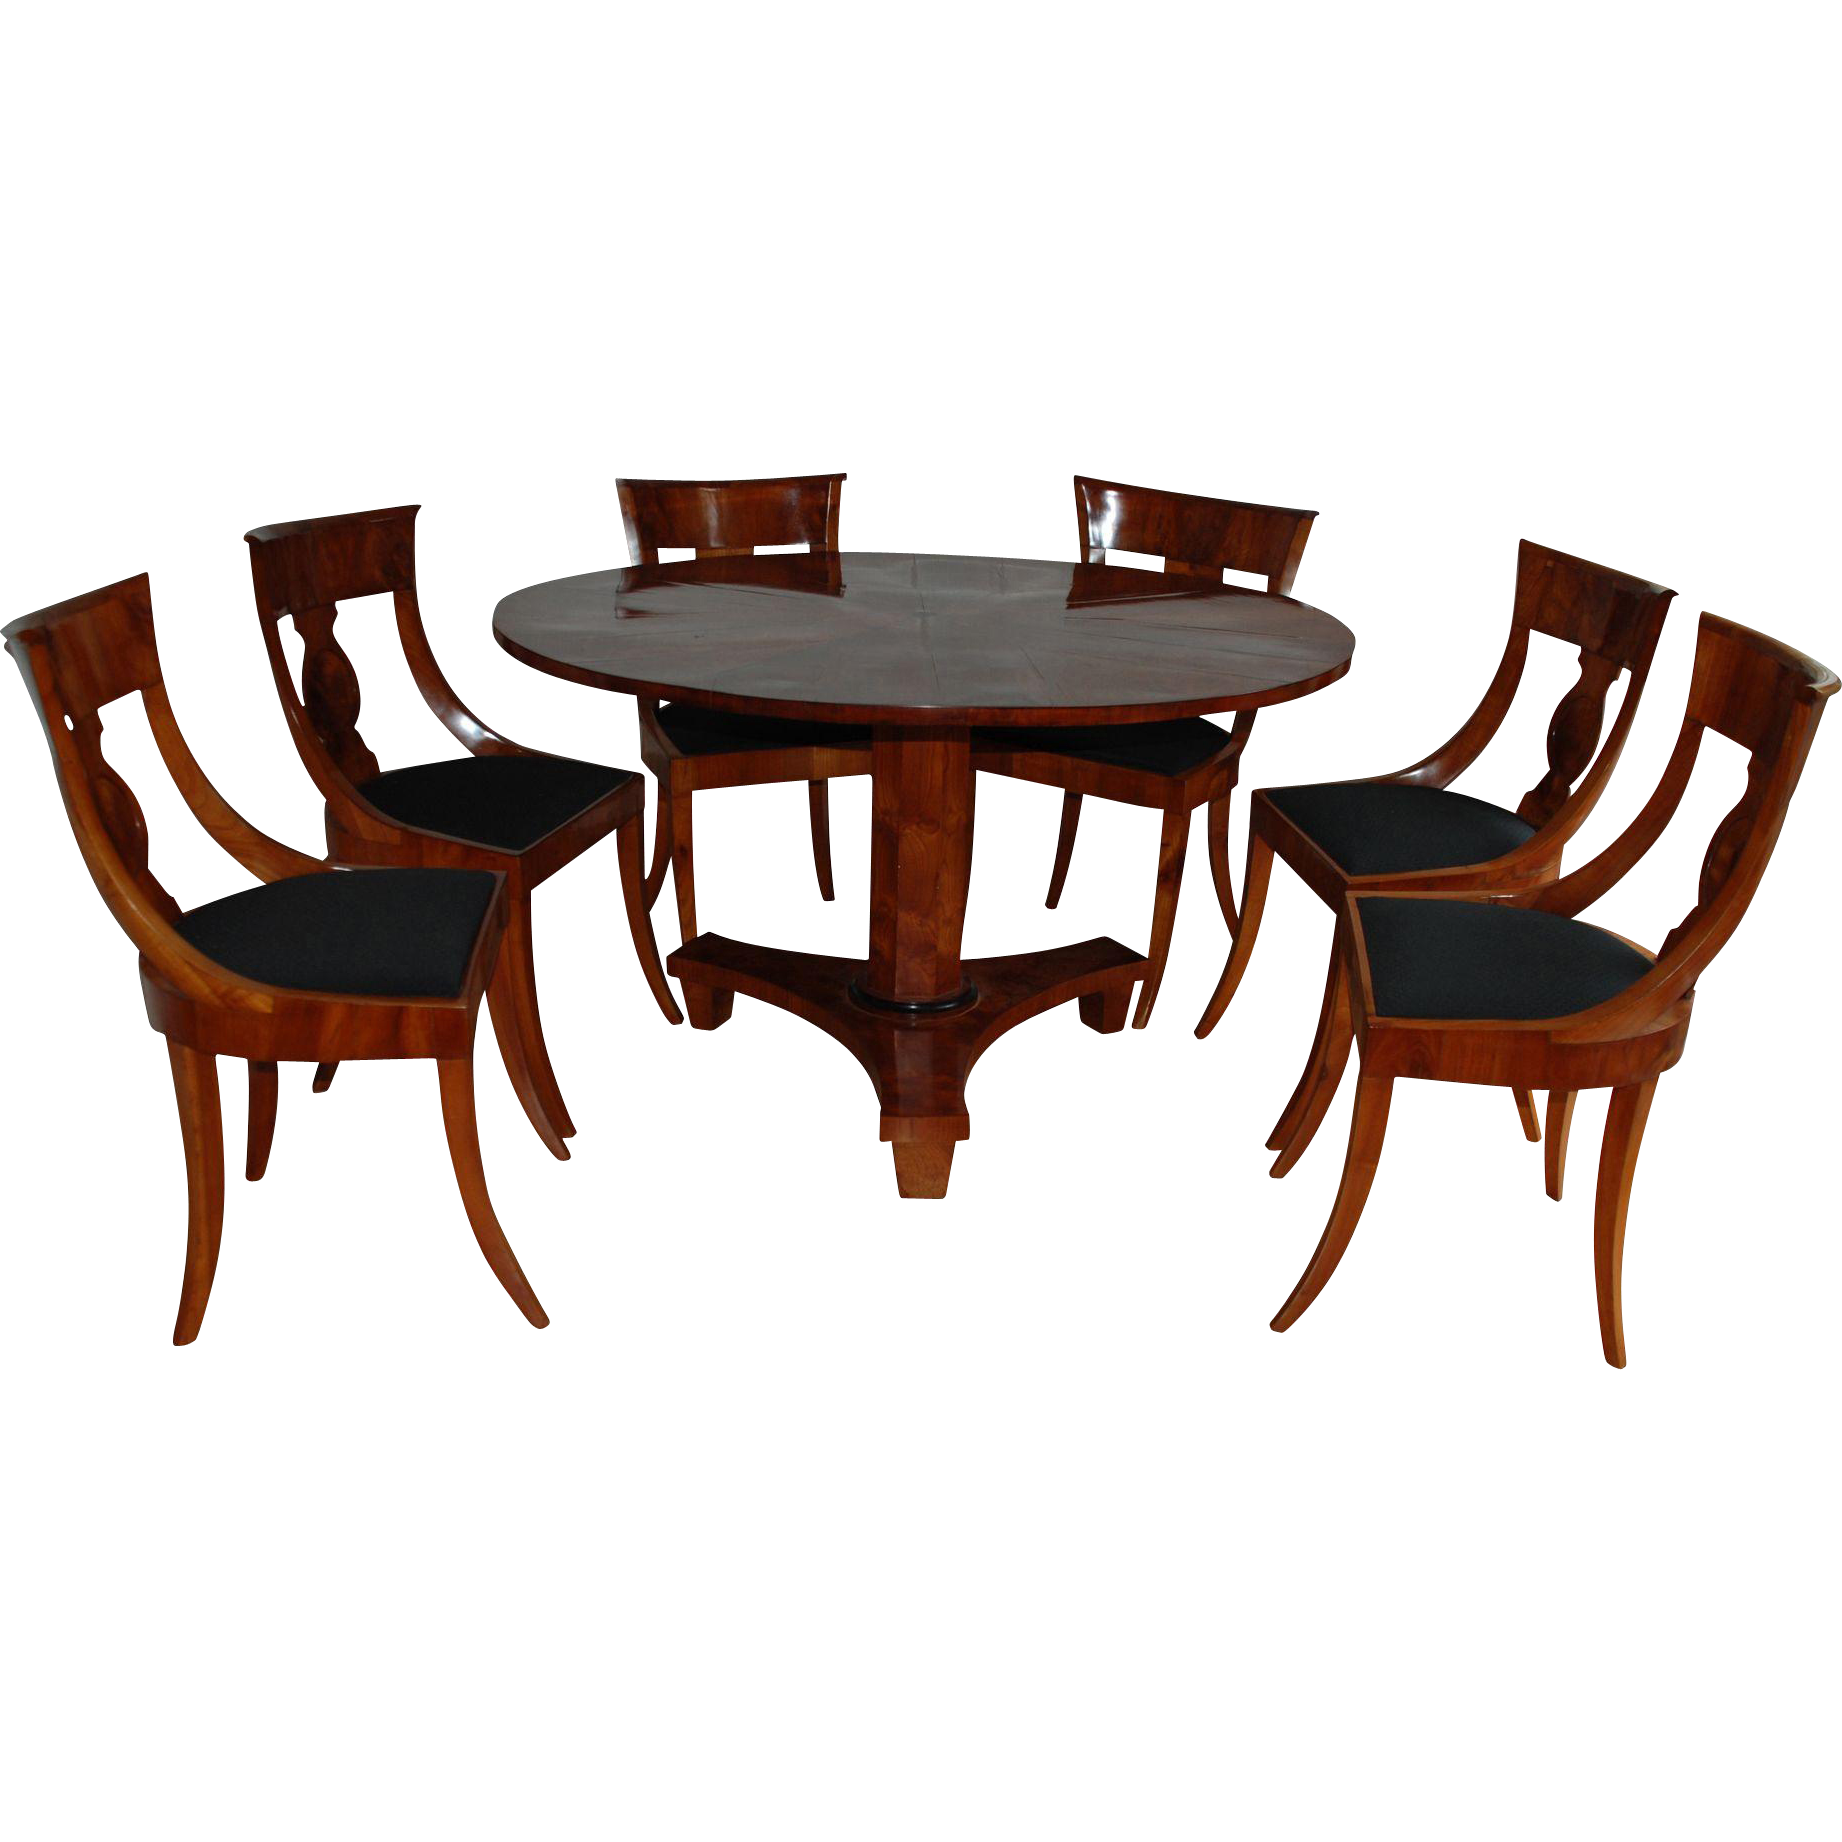 Biedermeier Dining Table And Six Chairs Germany Early 1900 Century